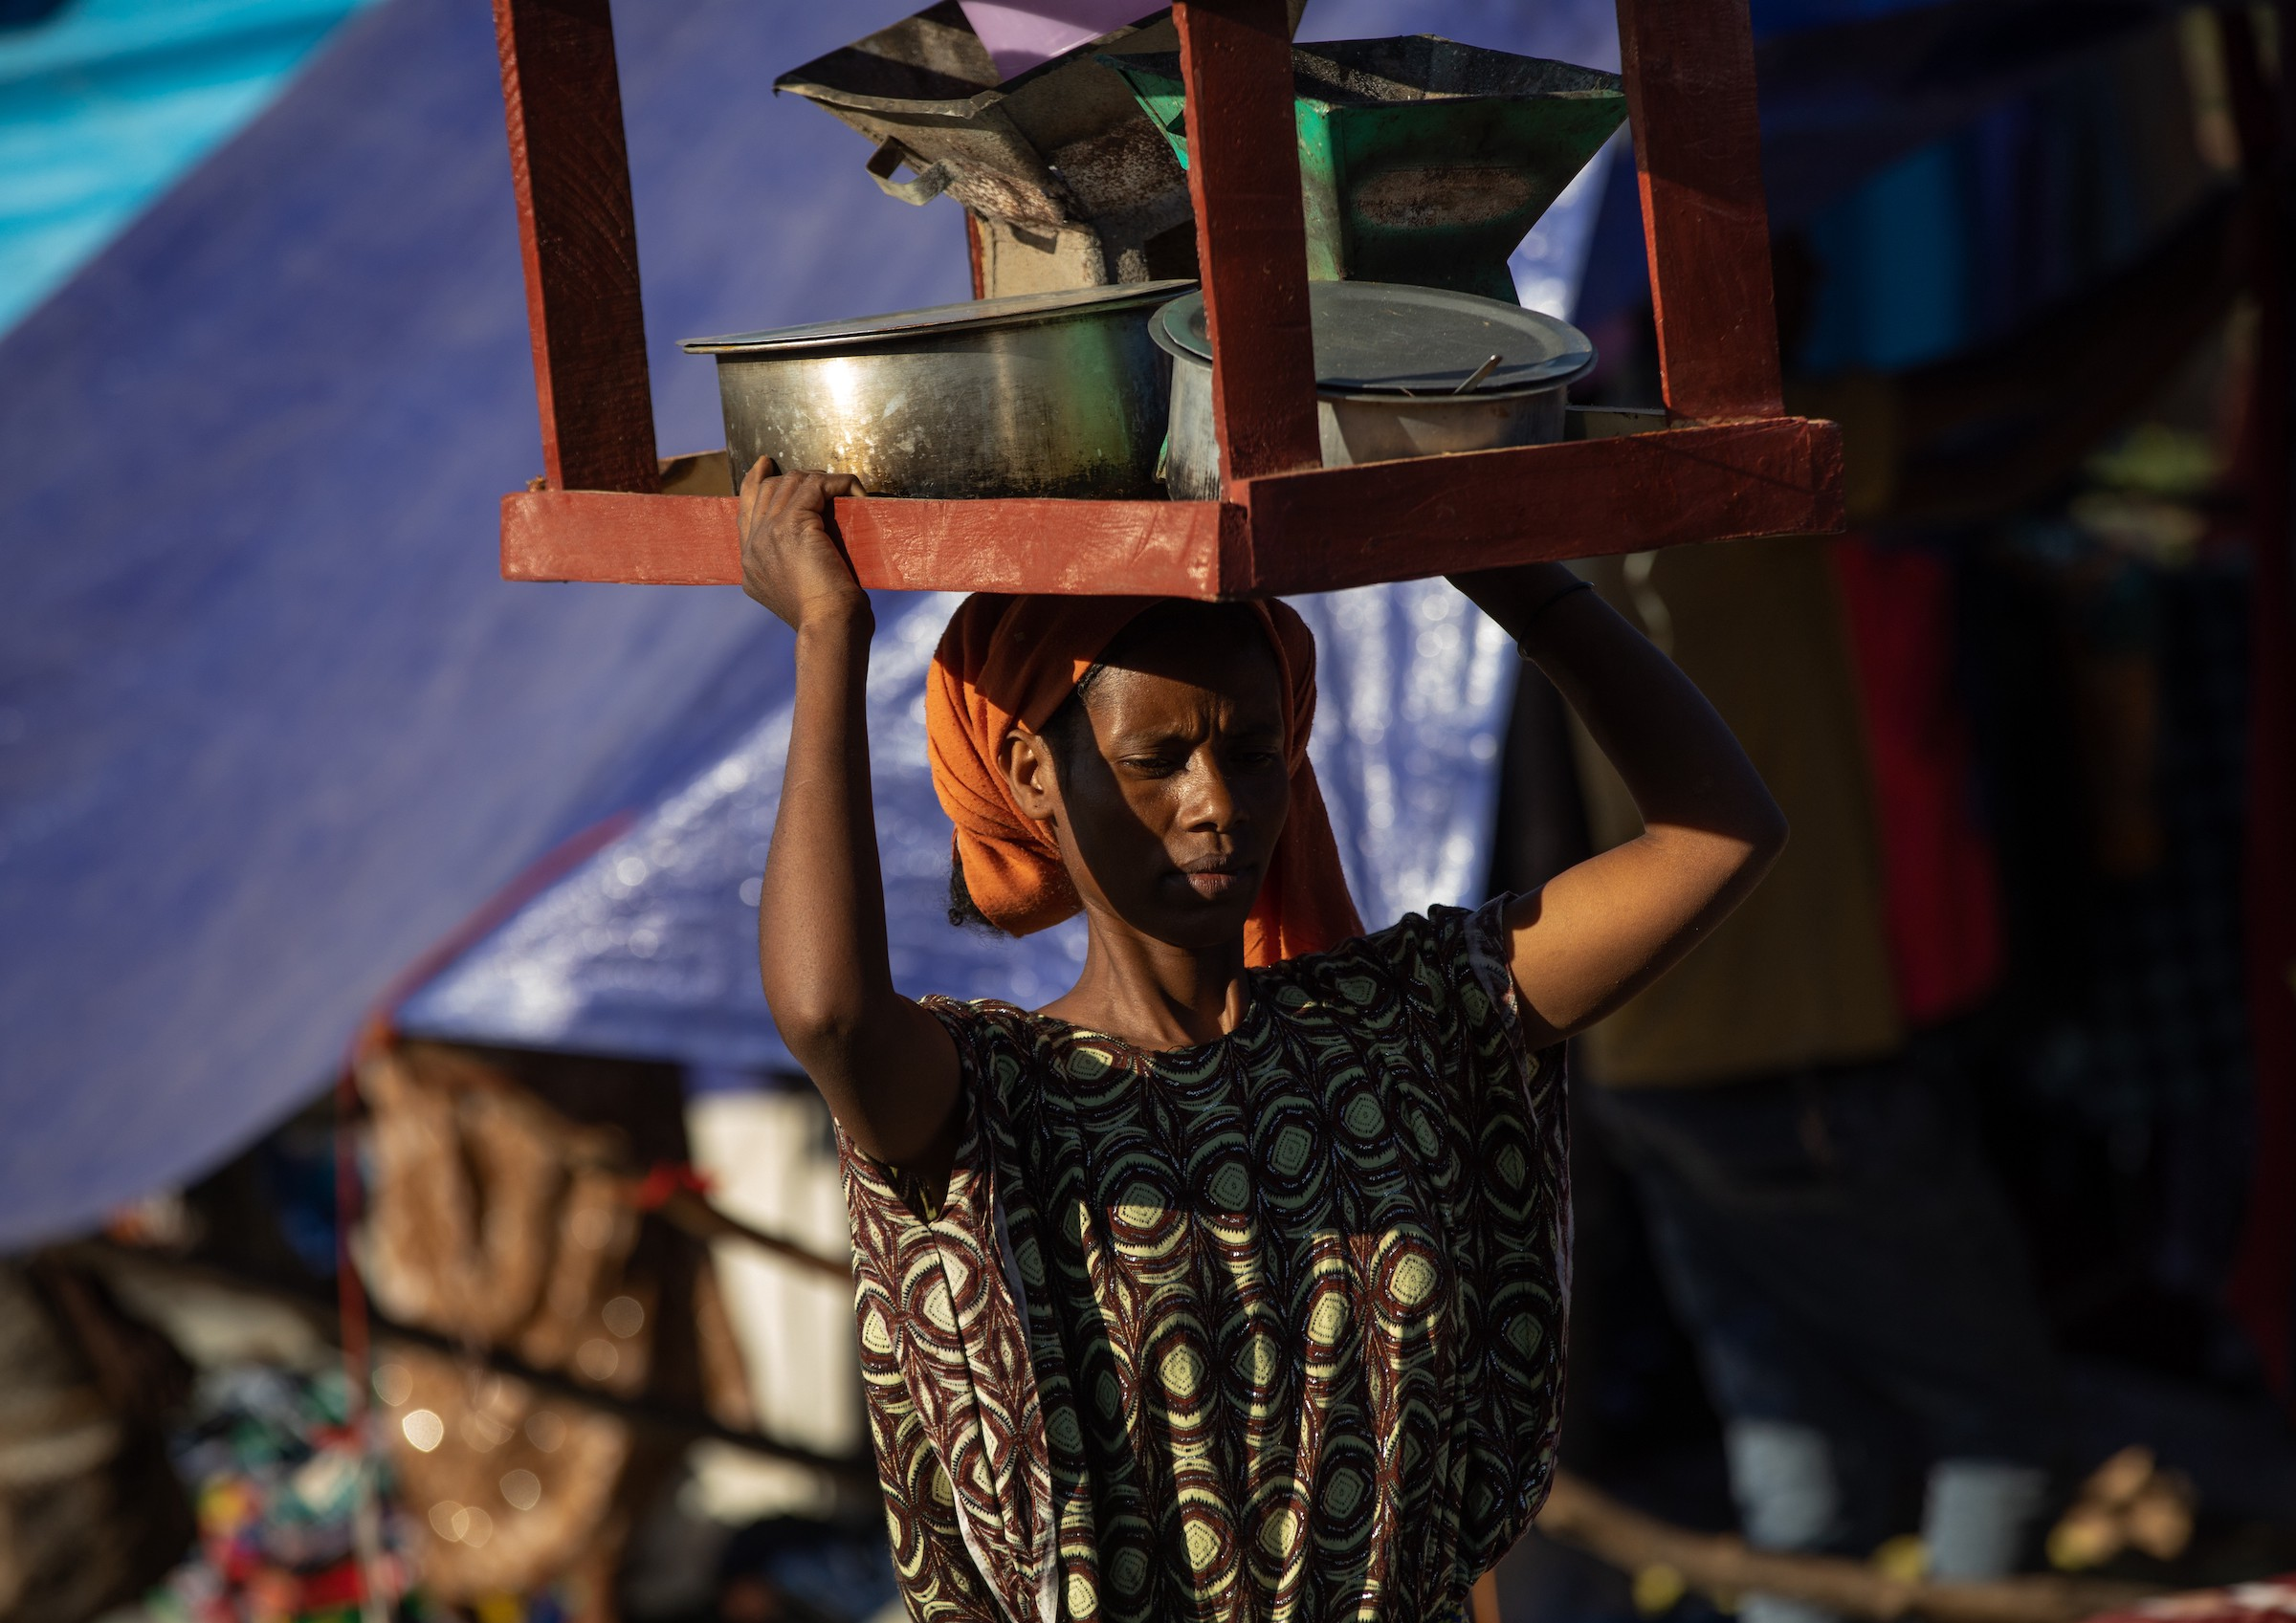 A woman balances a small, upside-down table on her head, using it to carry things; there's a blue tarp tent in the background